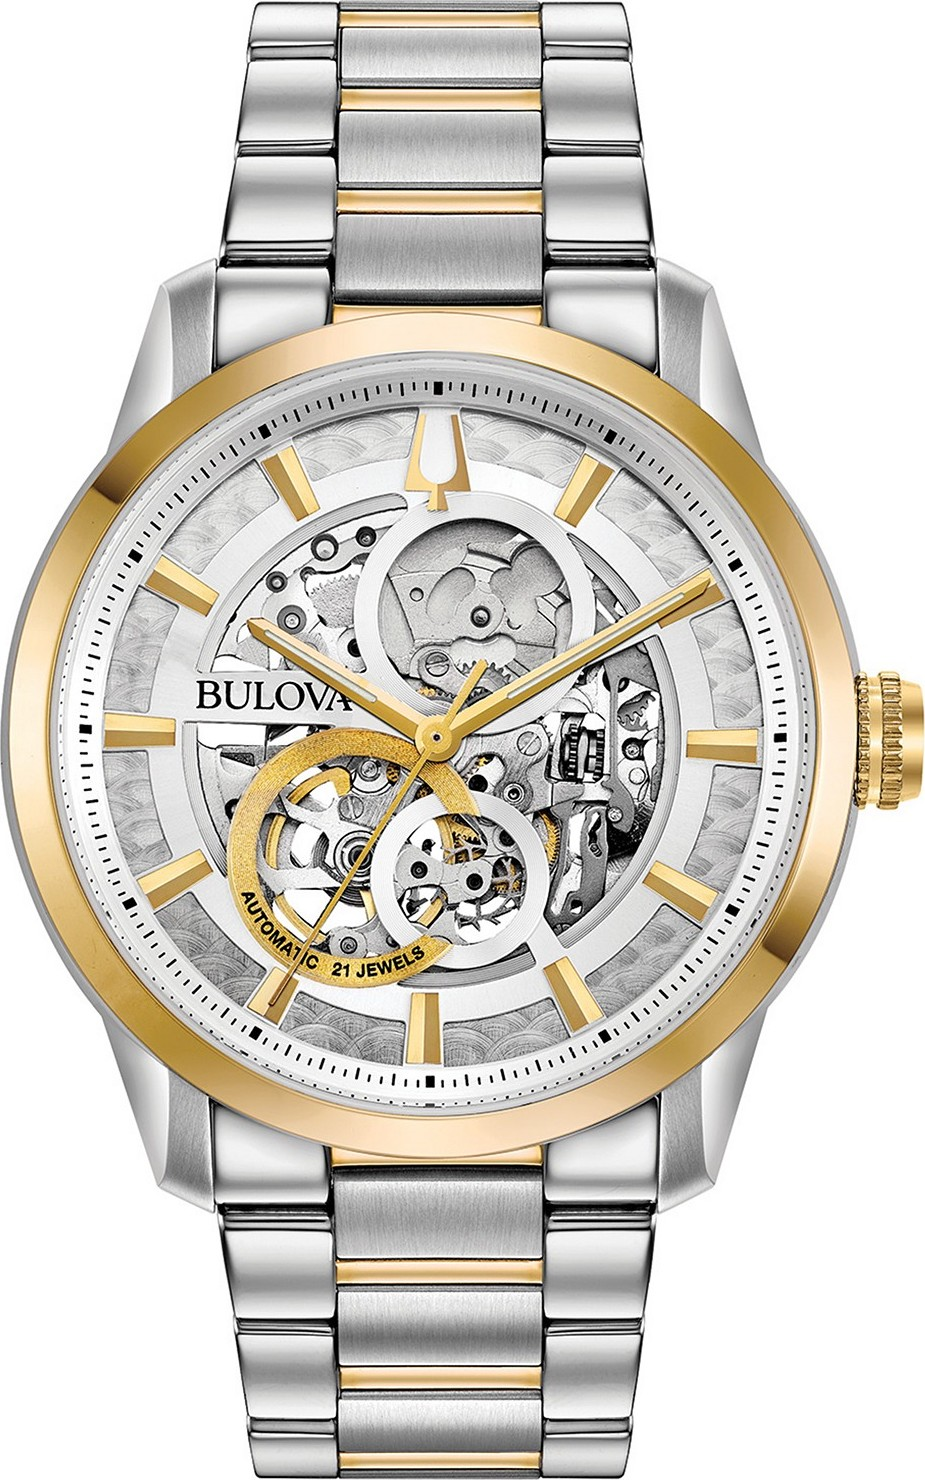 Bulova Sutton Automatic Watch 43mm